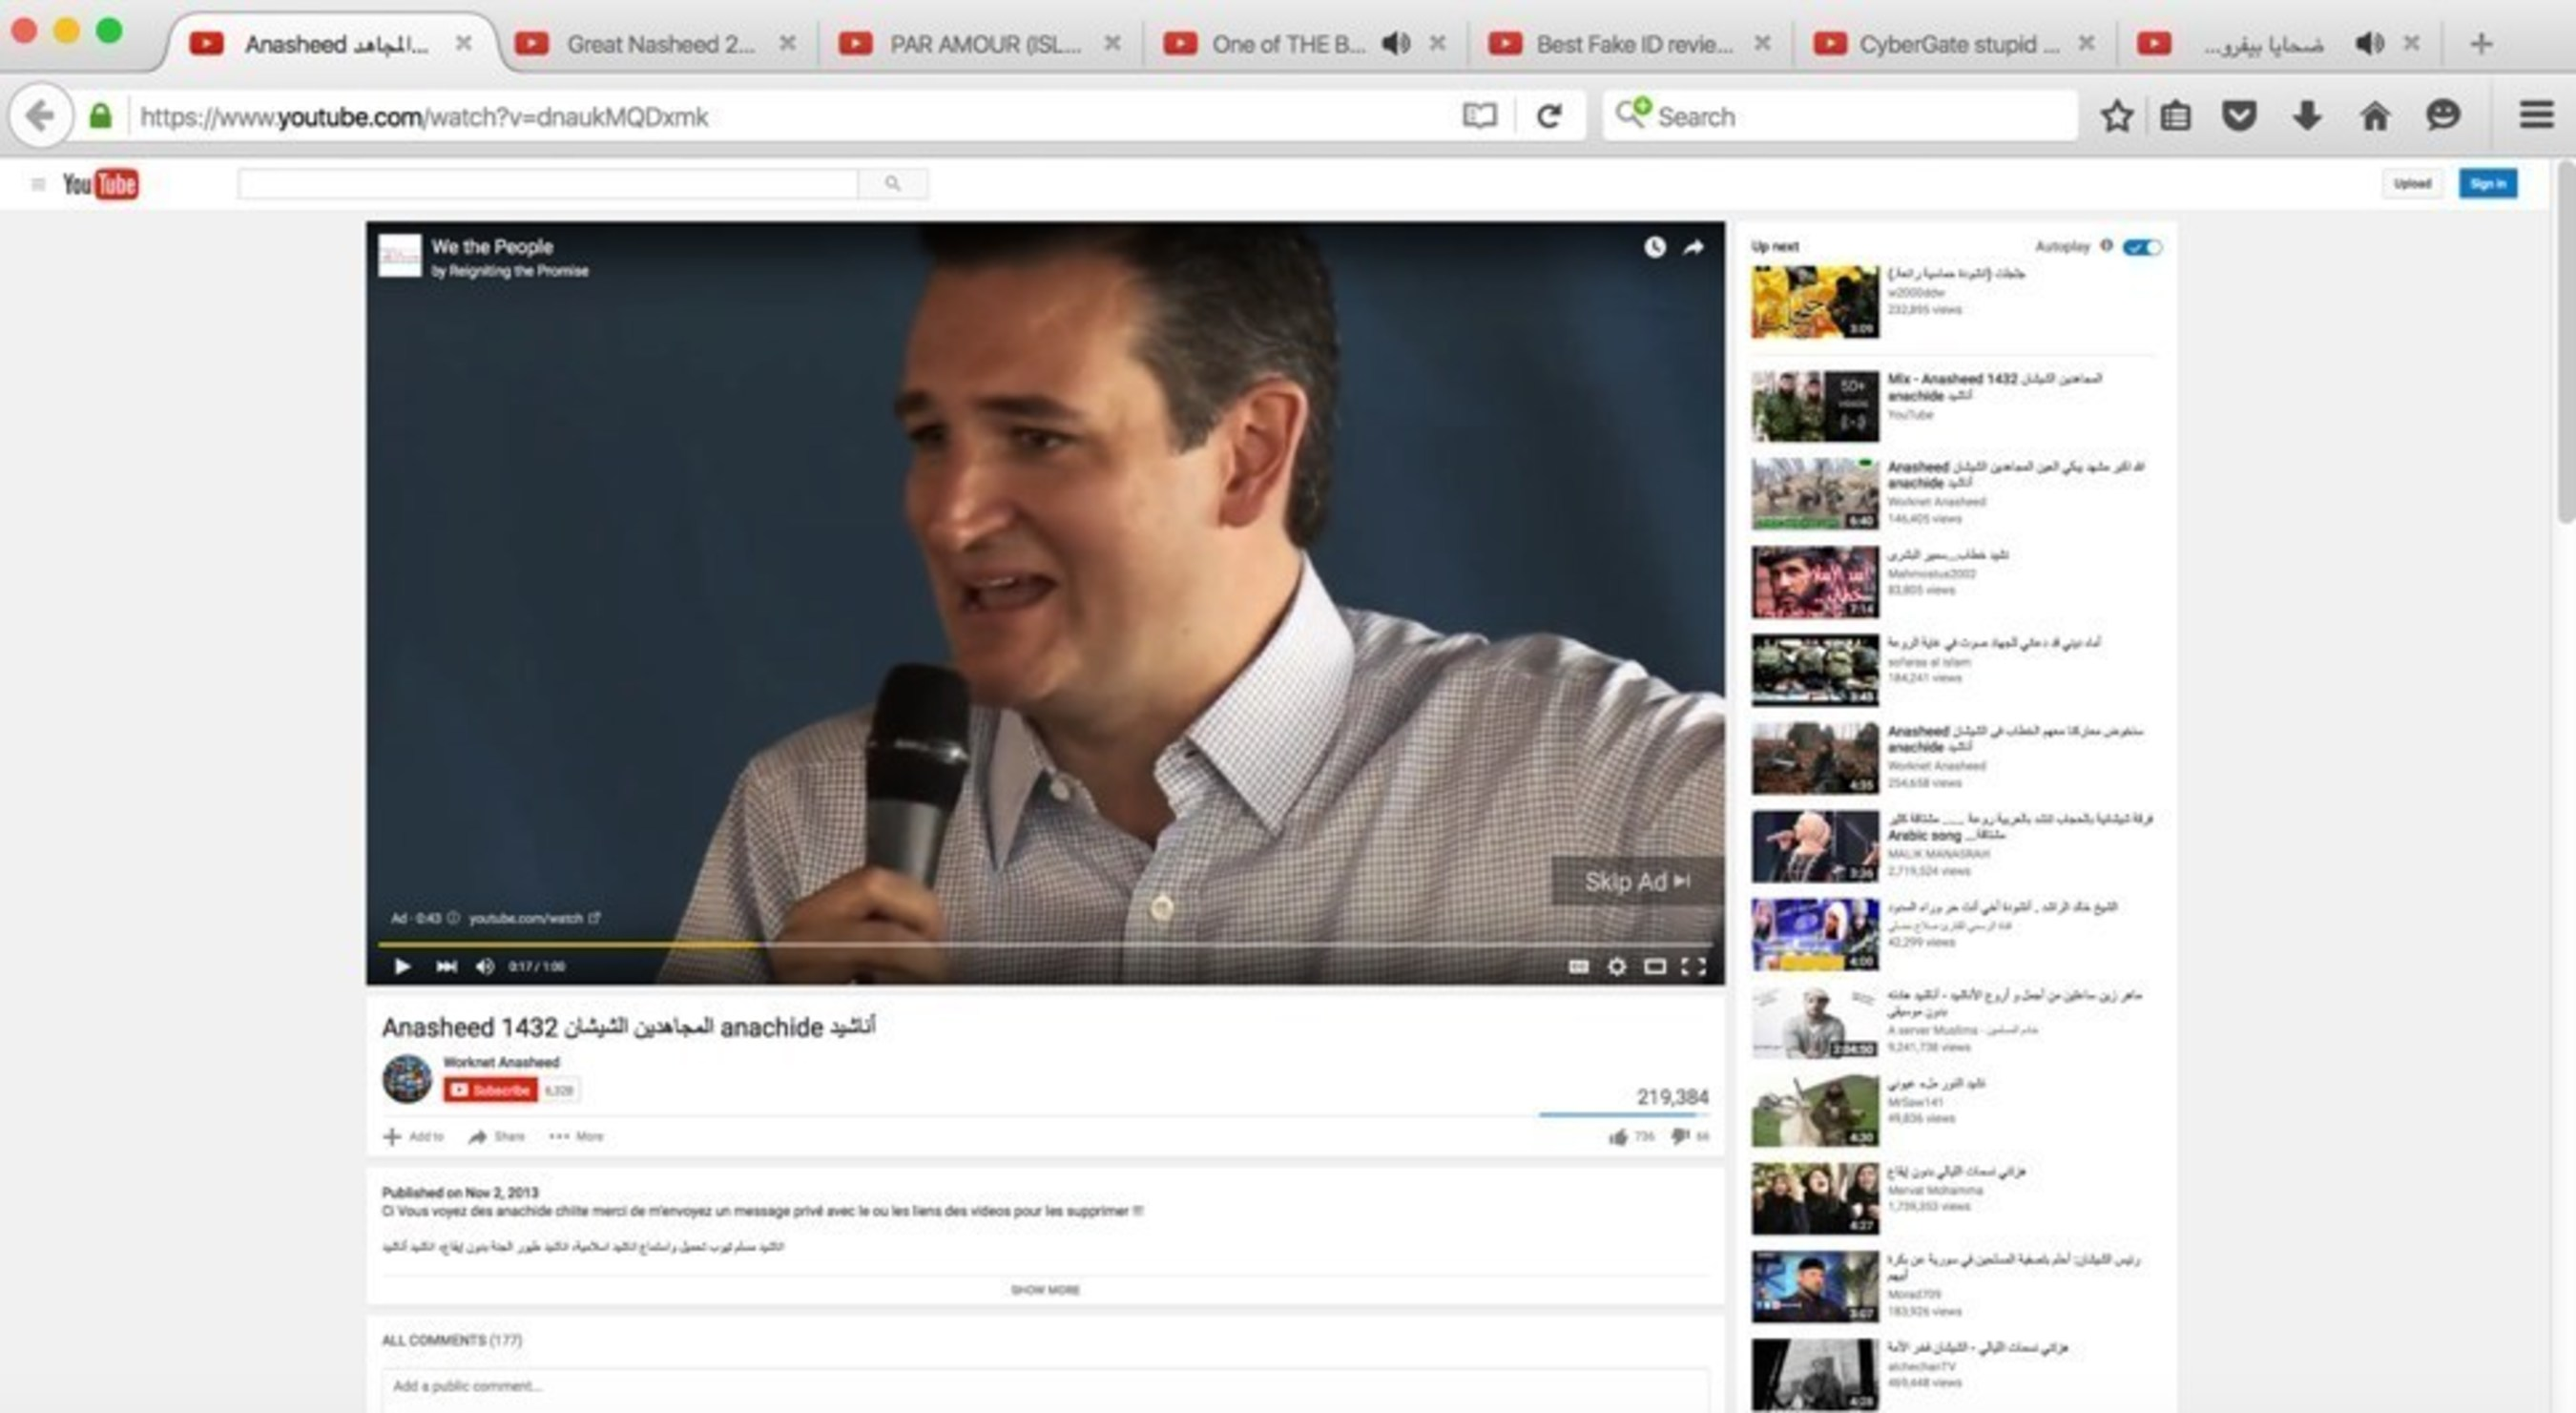 Screenshot including a Reigniting the Promise (a pro-Cruz Super PAC) taken in Arlington, VA on February 29, 2016.